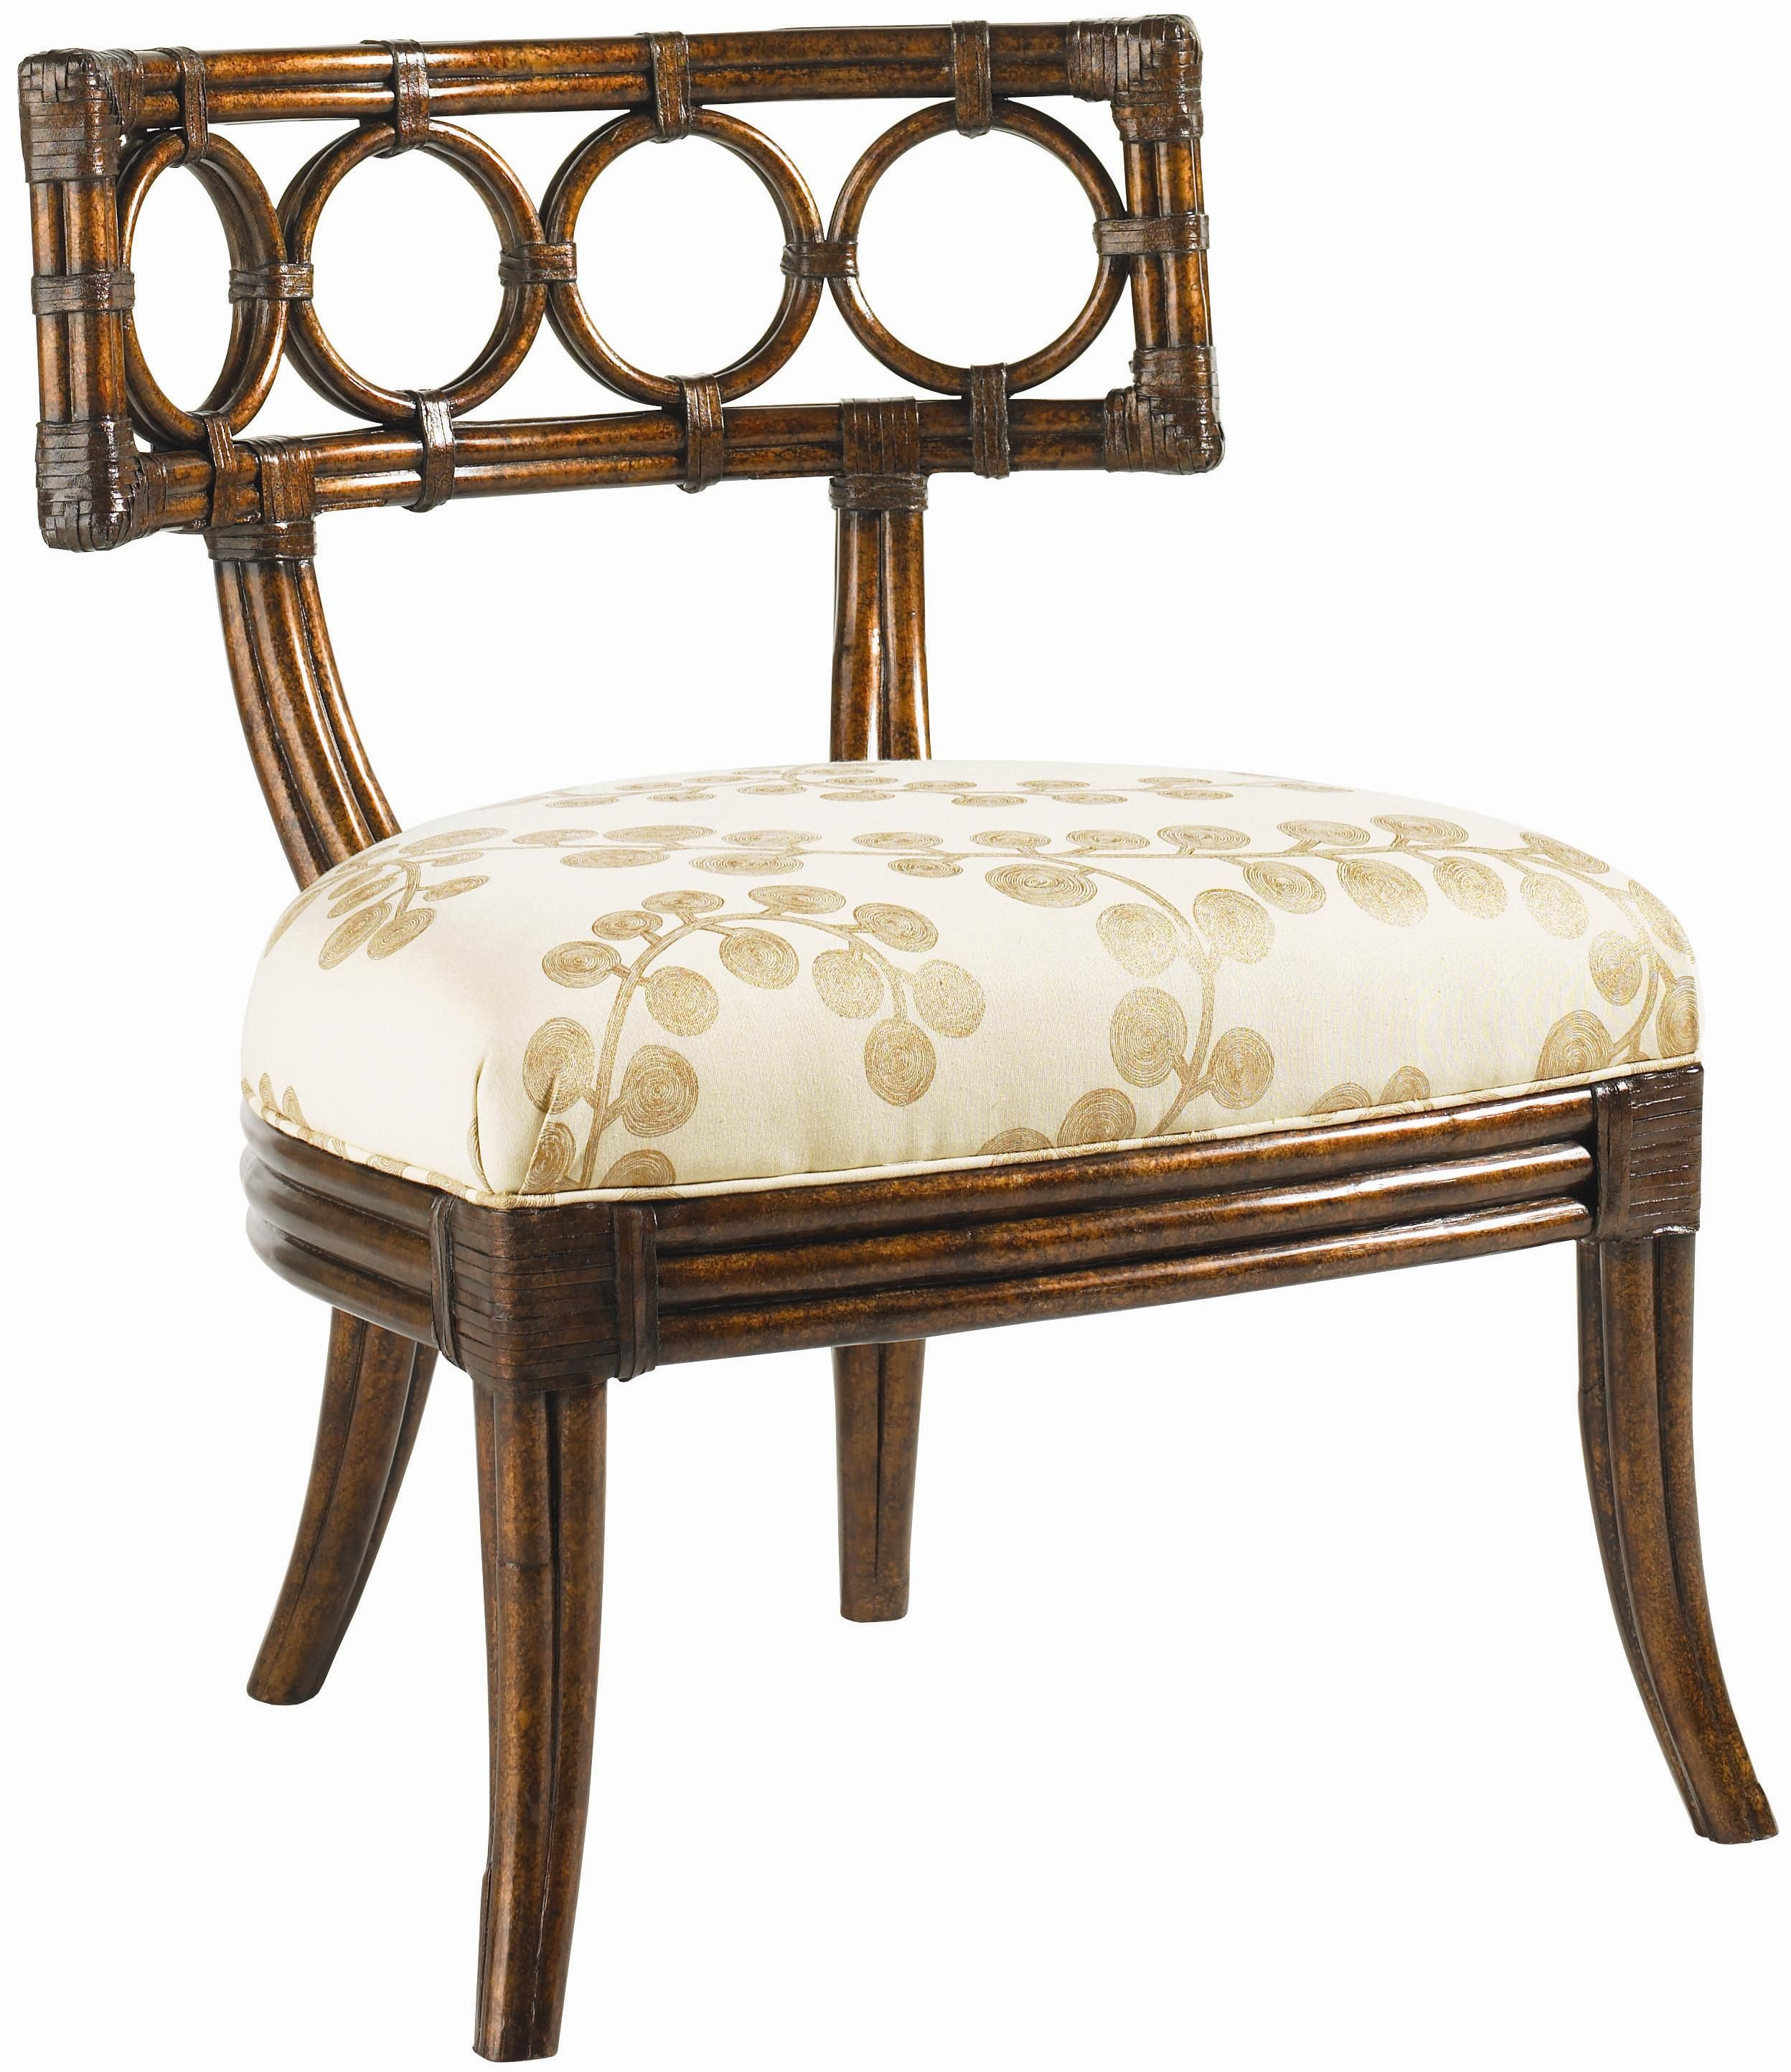 Royal Kahala Koa Lattice Back Chair By Tommy Bahama Home Baer S Furniture Exposed Wood Chair Miami Ft Laude Furniture Lexington Home Home Decor